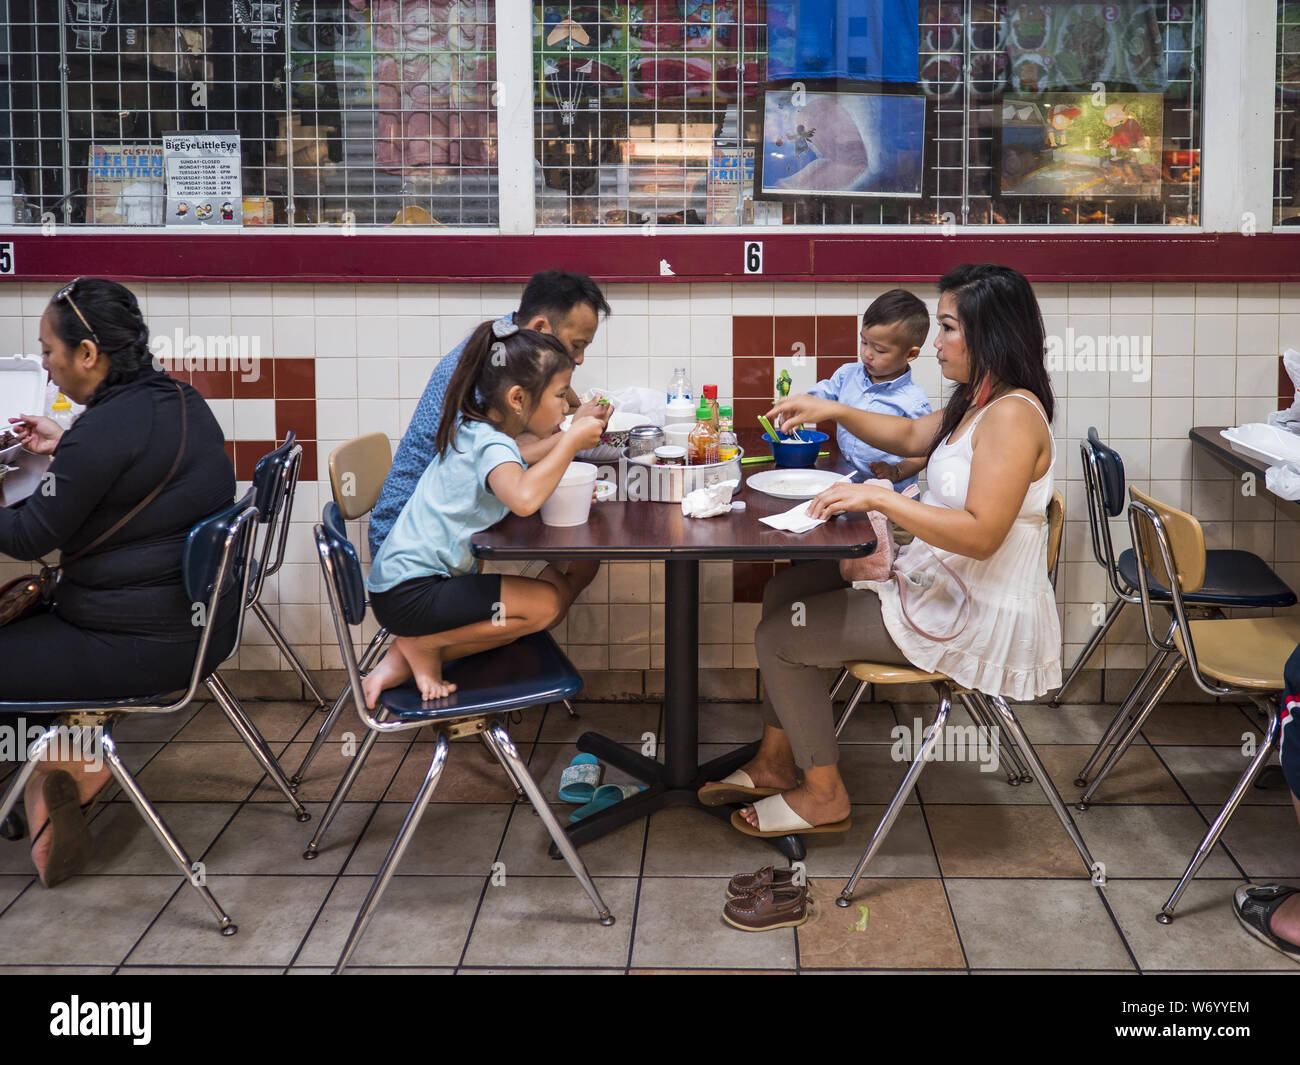 St Paul Minnesota Usa 3rd Aug 2019 A Family Has Lunch